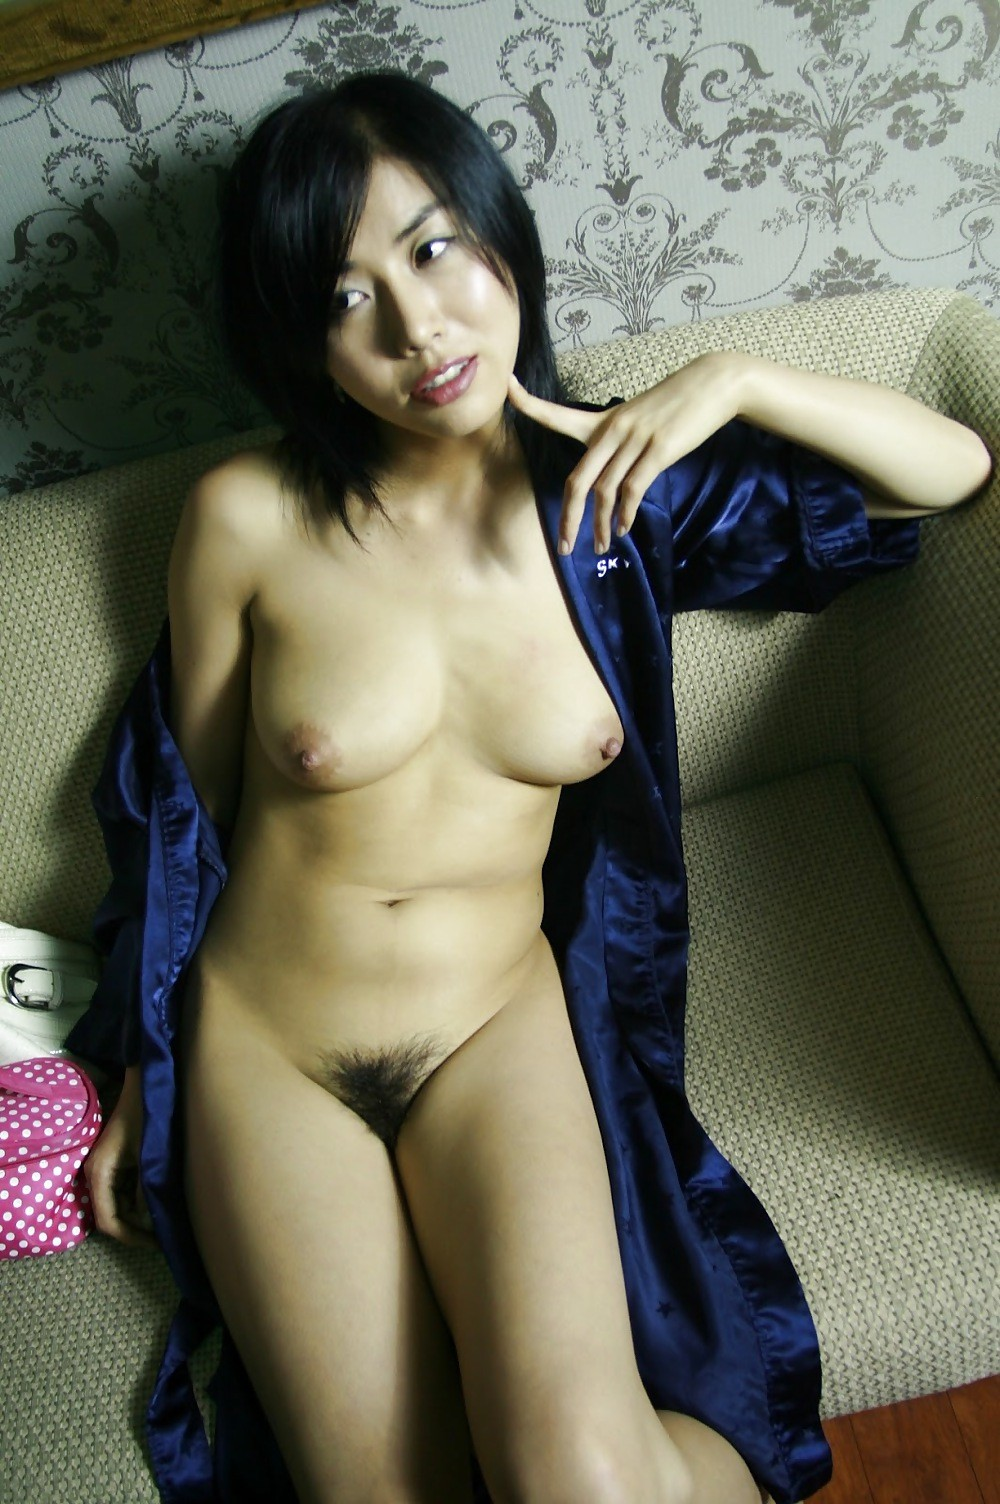 Clear pics of pussy